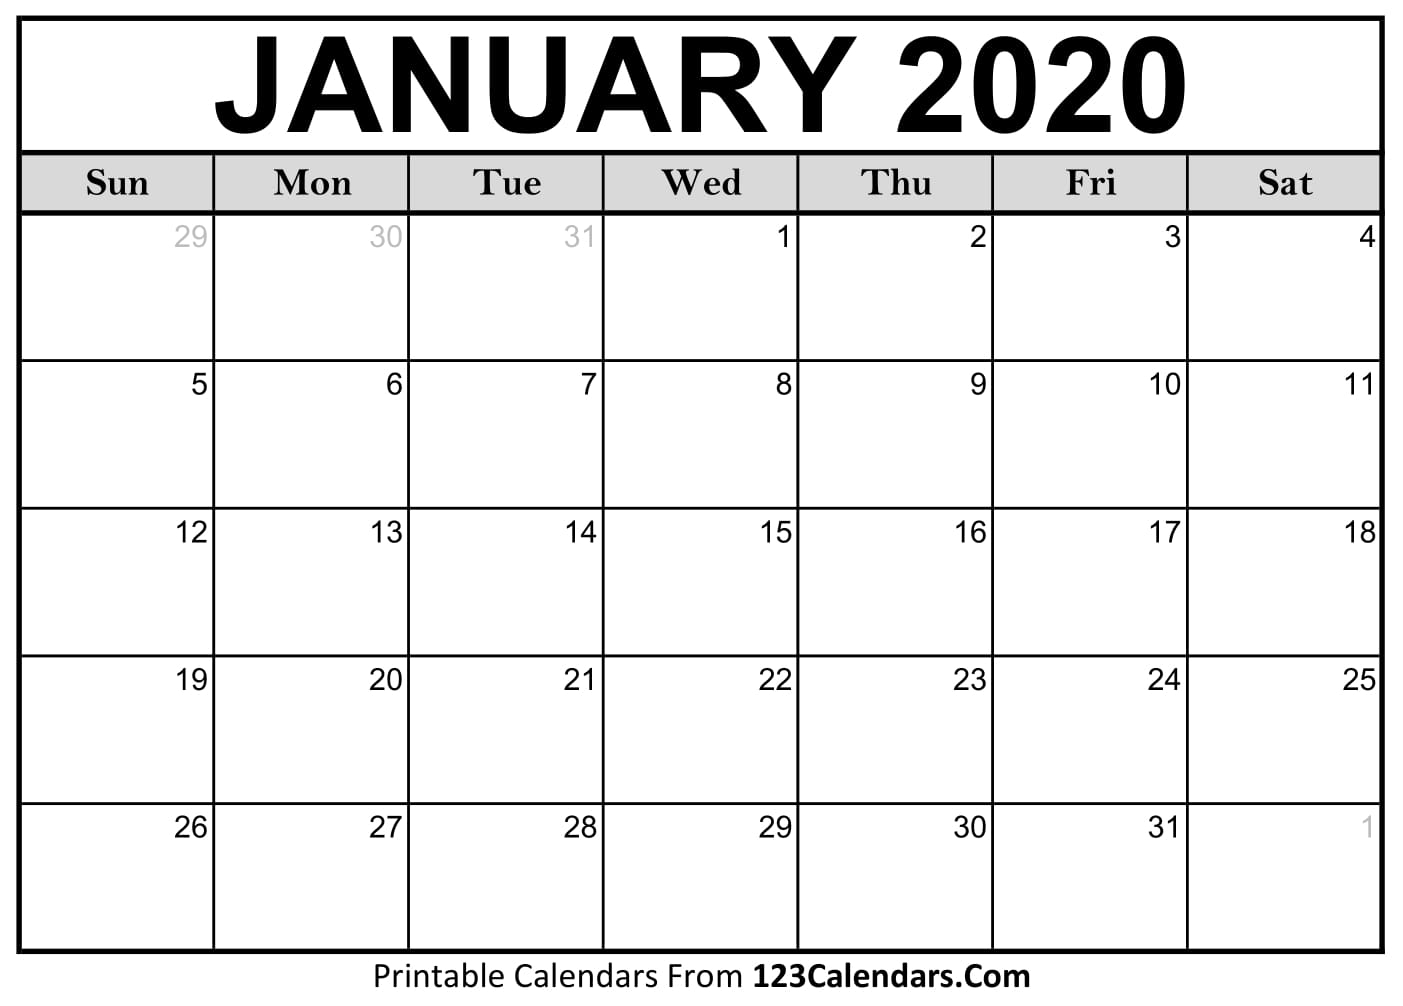 Online Calendar Jan 2020 - Wpa.wpart.co